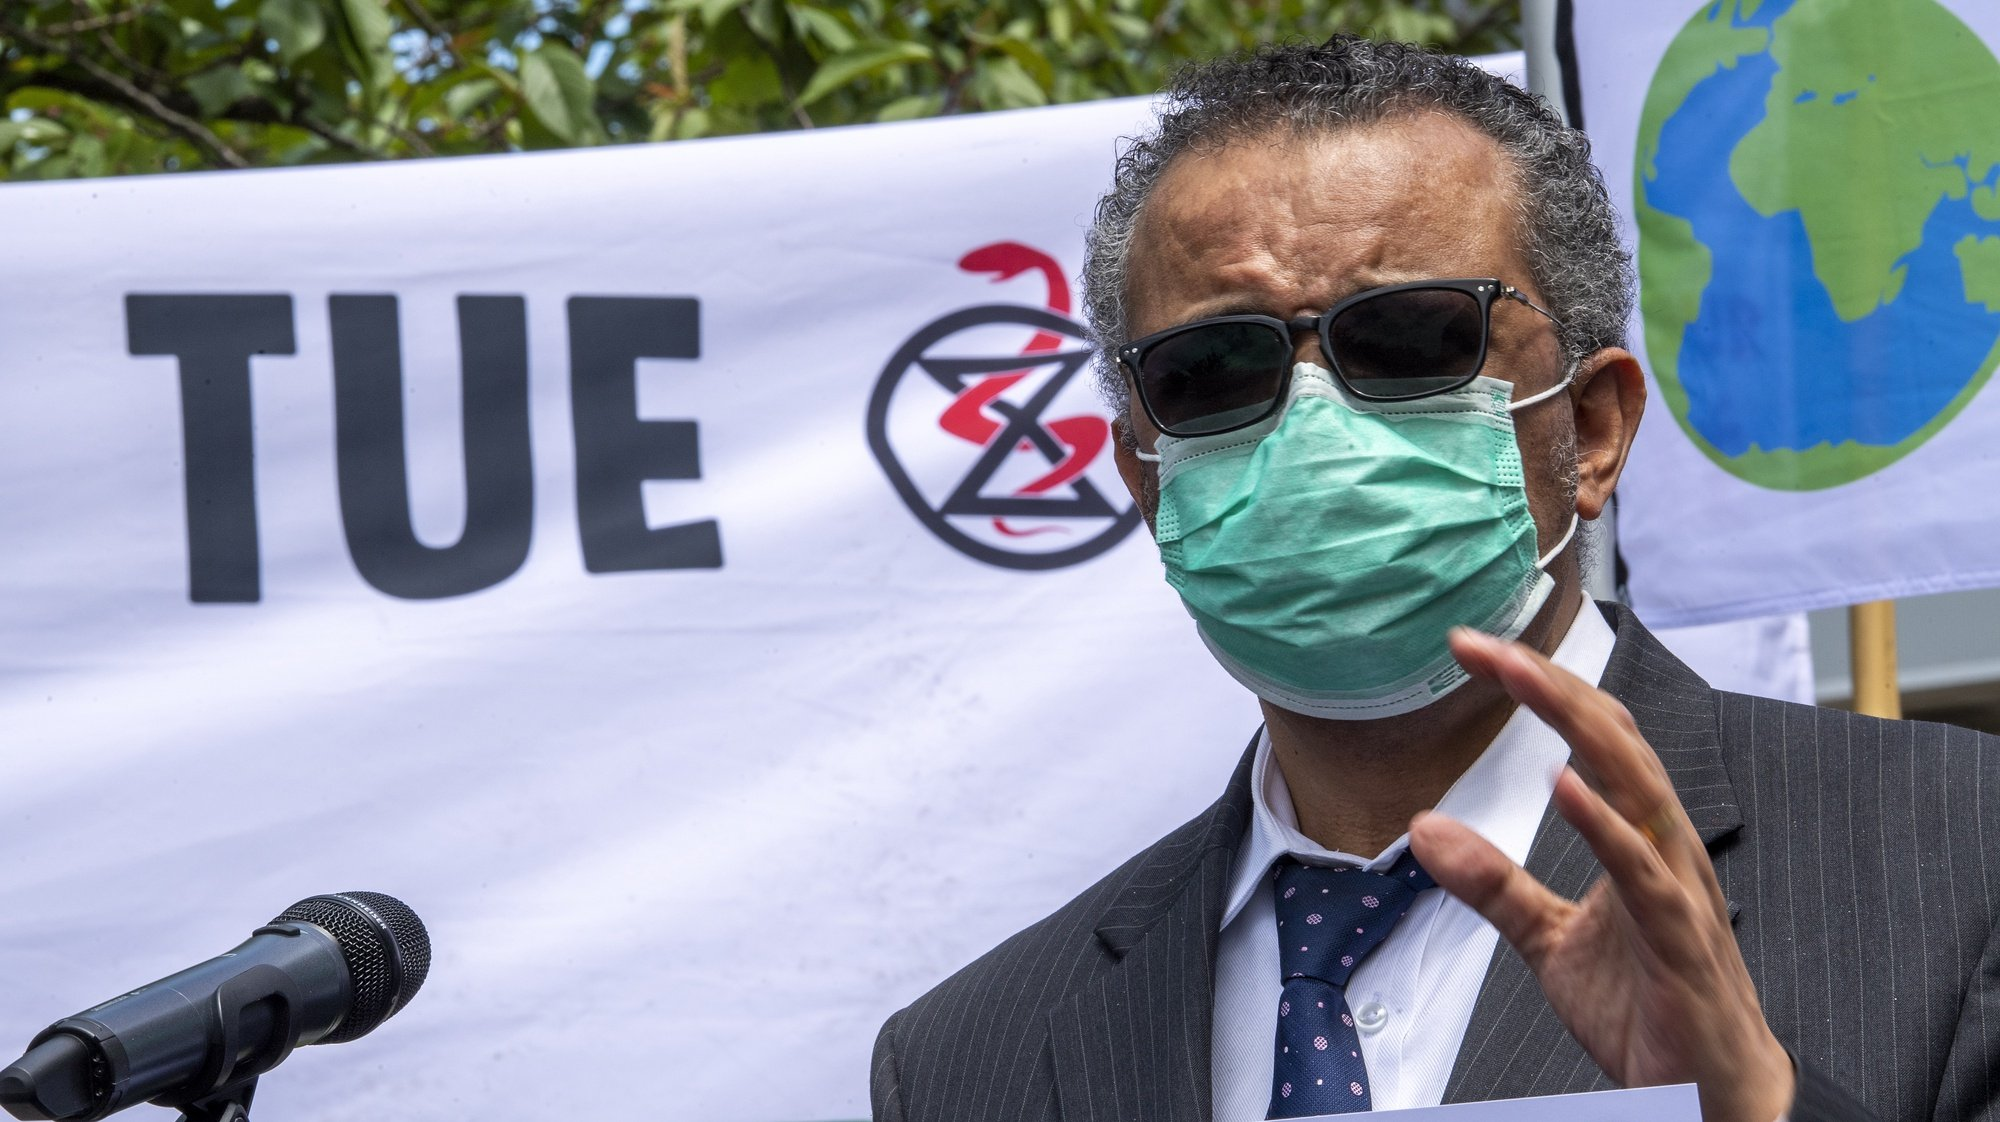 epa09234907 Director General of the World Health Organization (WHO), Tedros Adhanom Ghebreyesus meets members of the Doctors for Extinction Rebellion (XR) collective during a protest in front of the WHO headquarters on the sideline of the WHO's World Health Assembly in Geneva, Switzerland, 29 May 2021. Hundreds of health workers marched to the WHO demanding that authorities in all countries recognize and act to counter the health risks of climate change.  EPA/MARTIAL TREZZINI